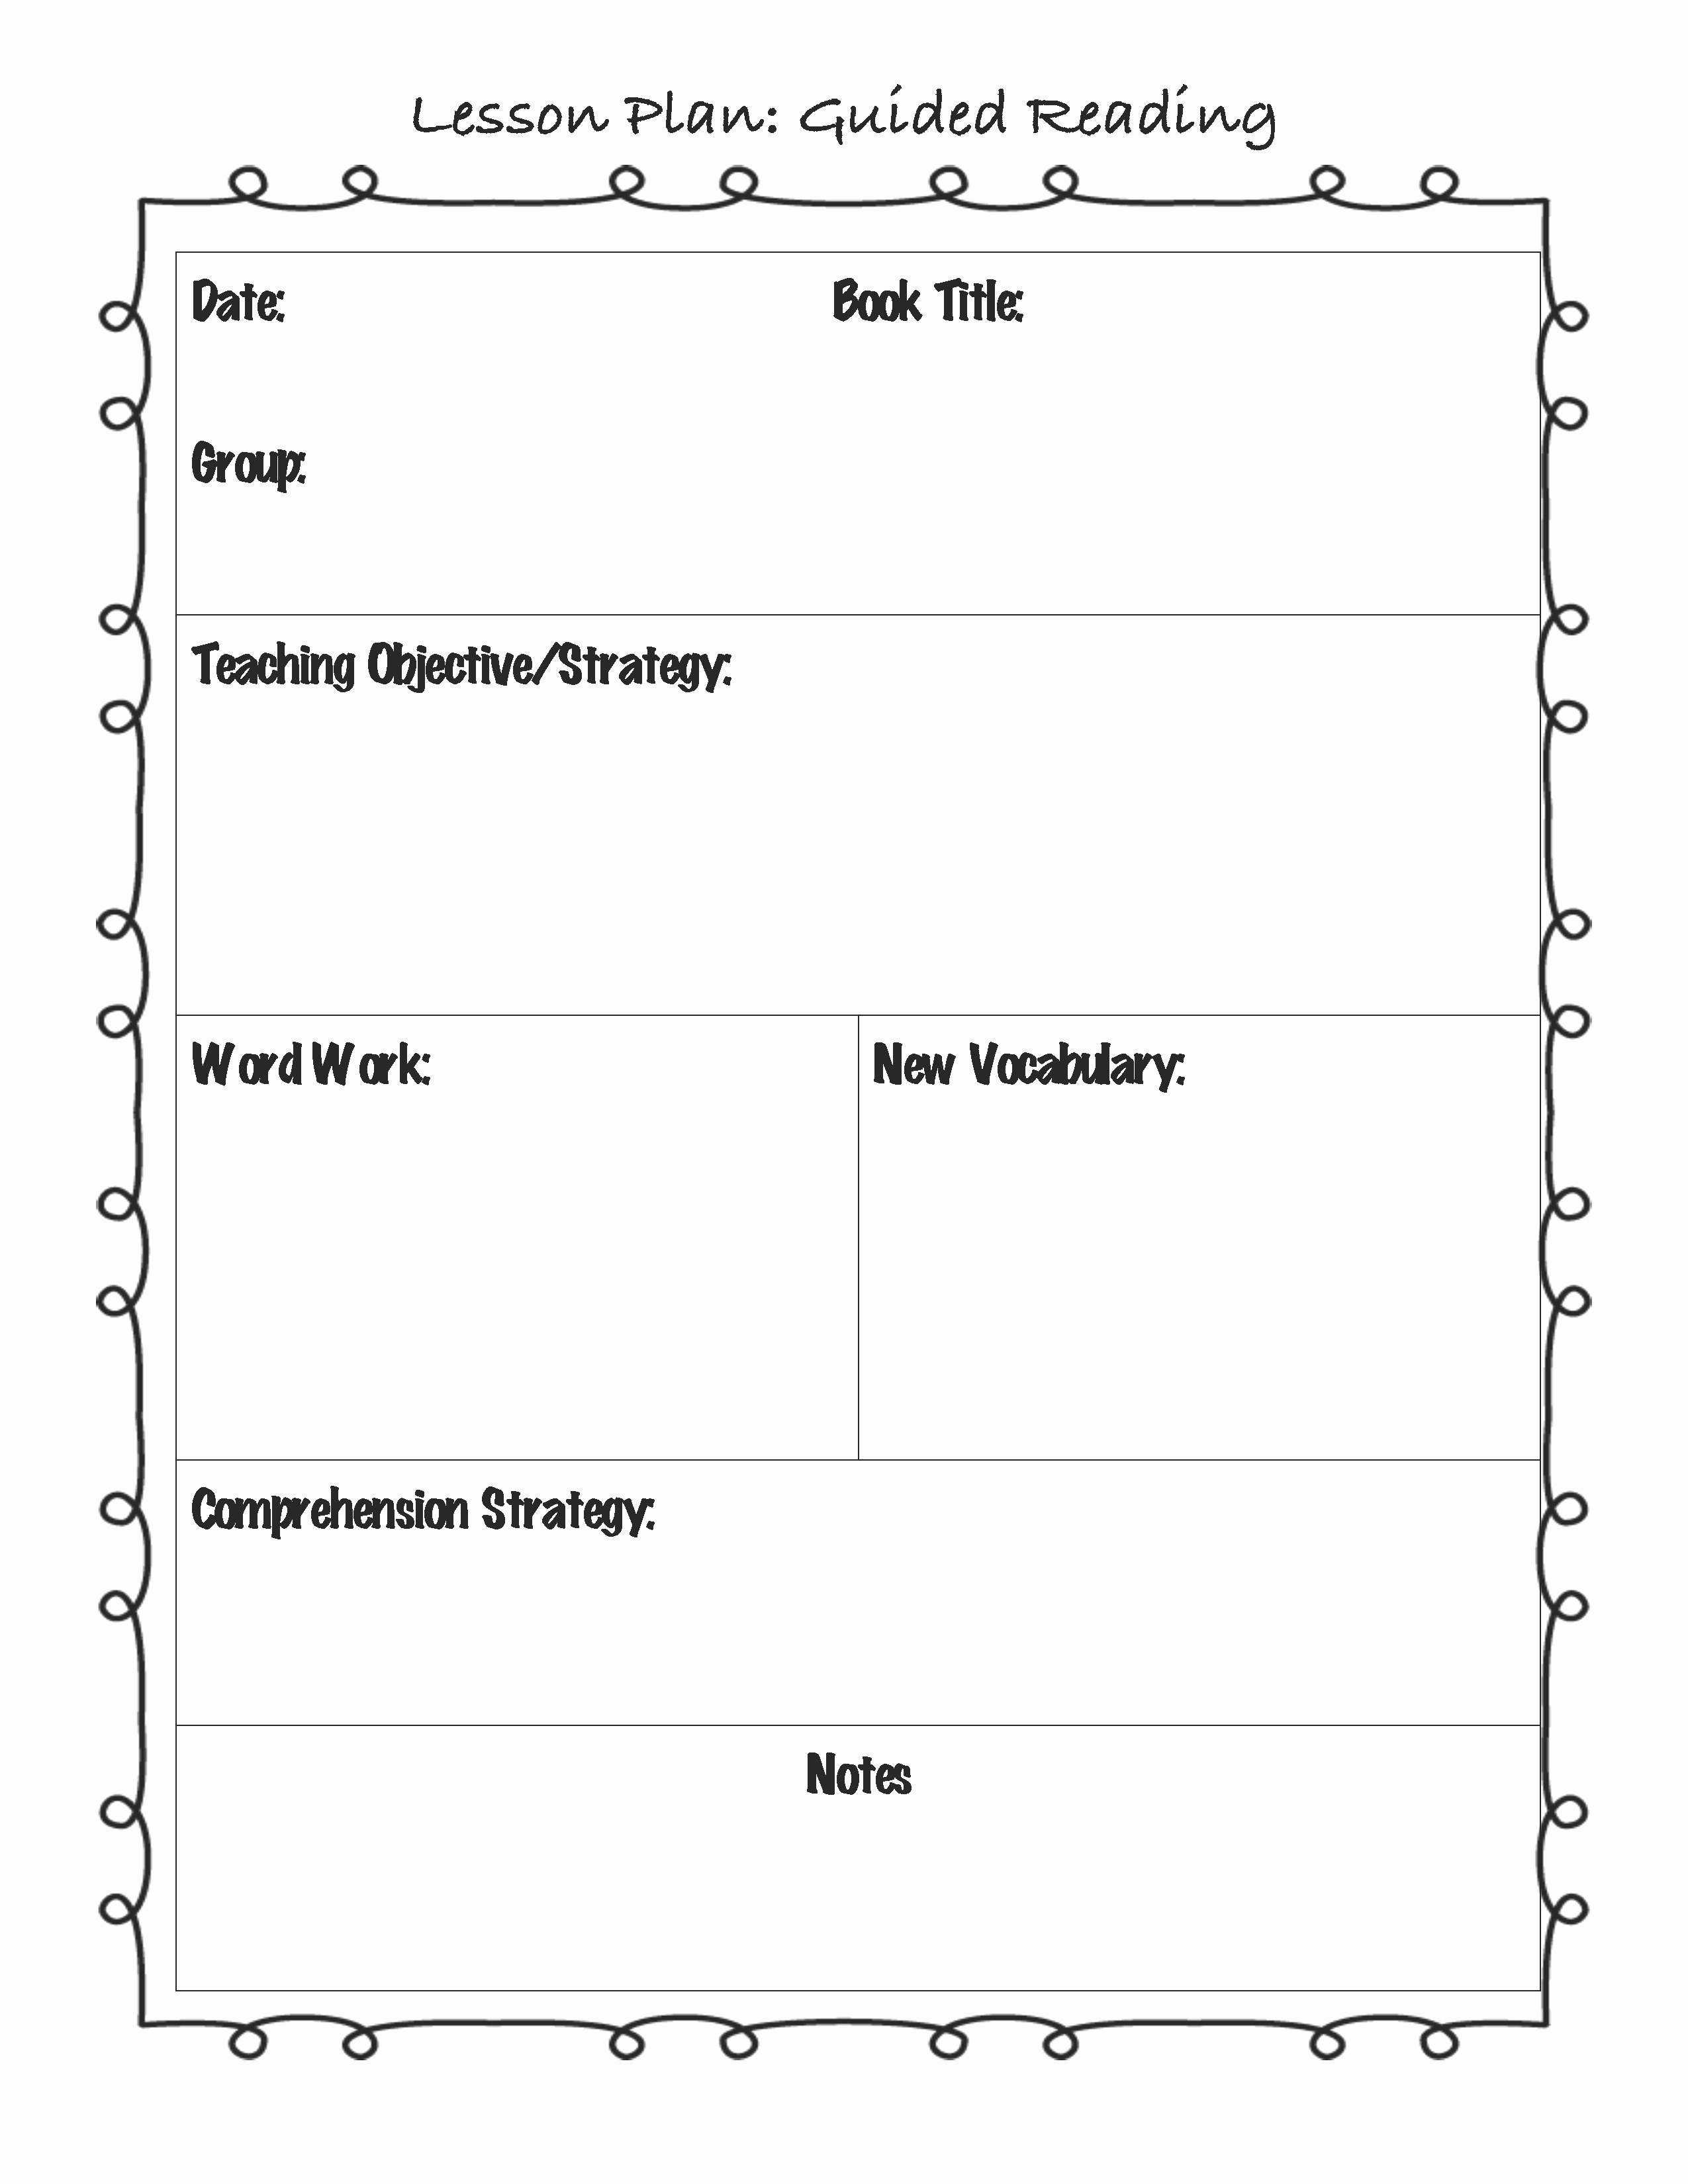 Lesson Plan Book Template Printable Elegant Guided Reading Lesson Plan Template